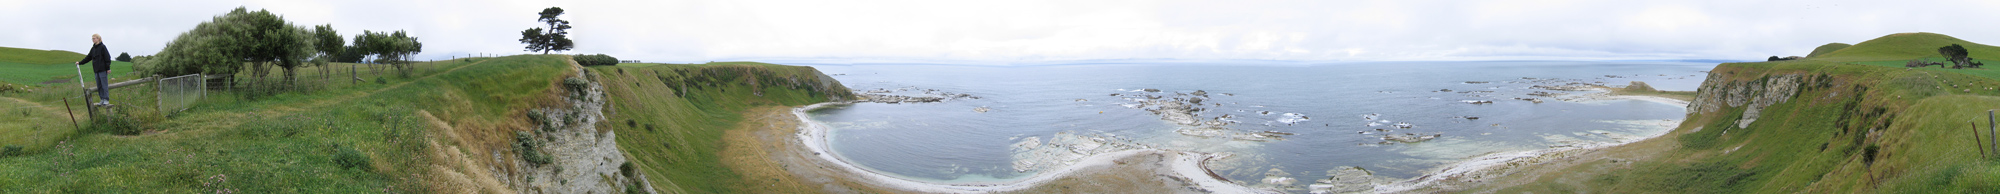 Panographic Image from Kaikoura, South Island, New Zealand